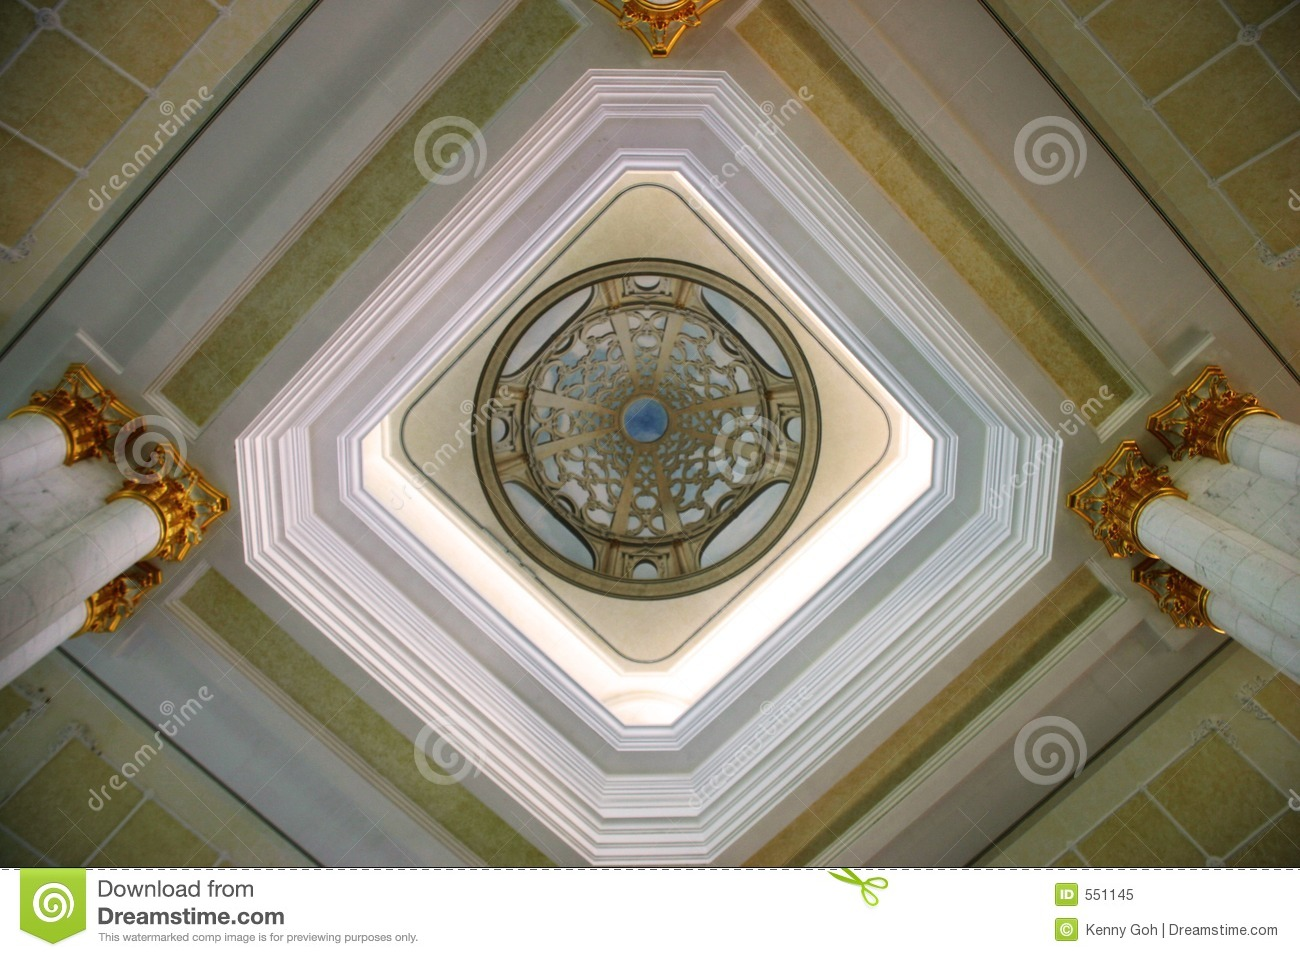 Royalty Free Stock Photo: Artistic Ceiling Design